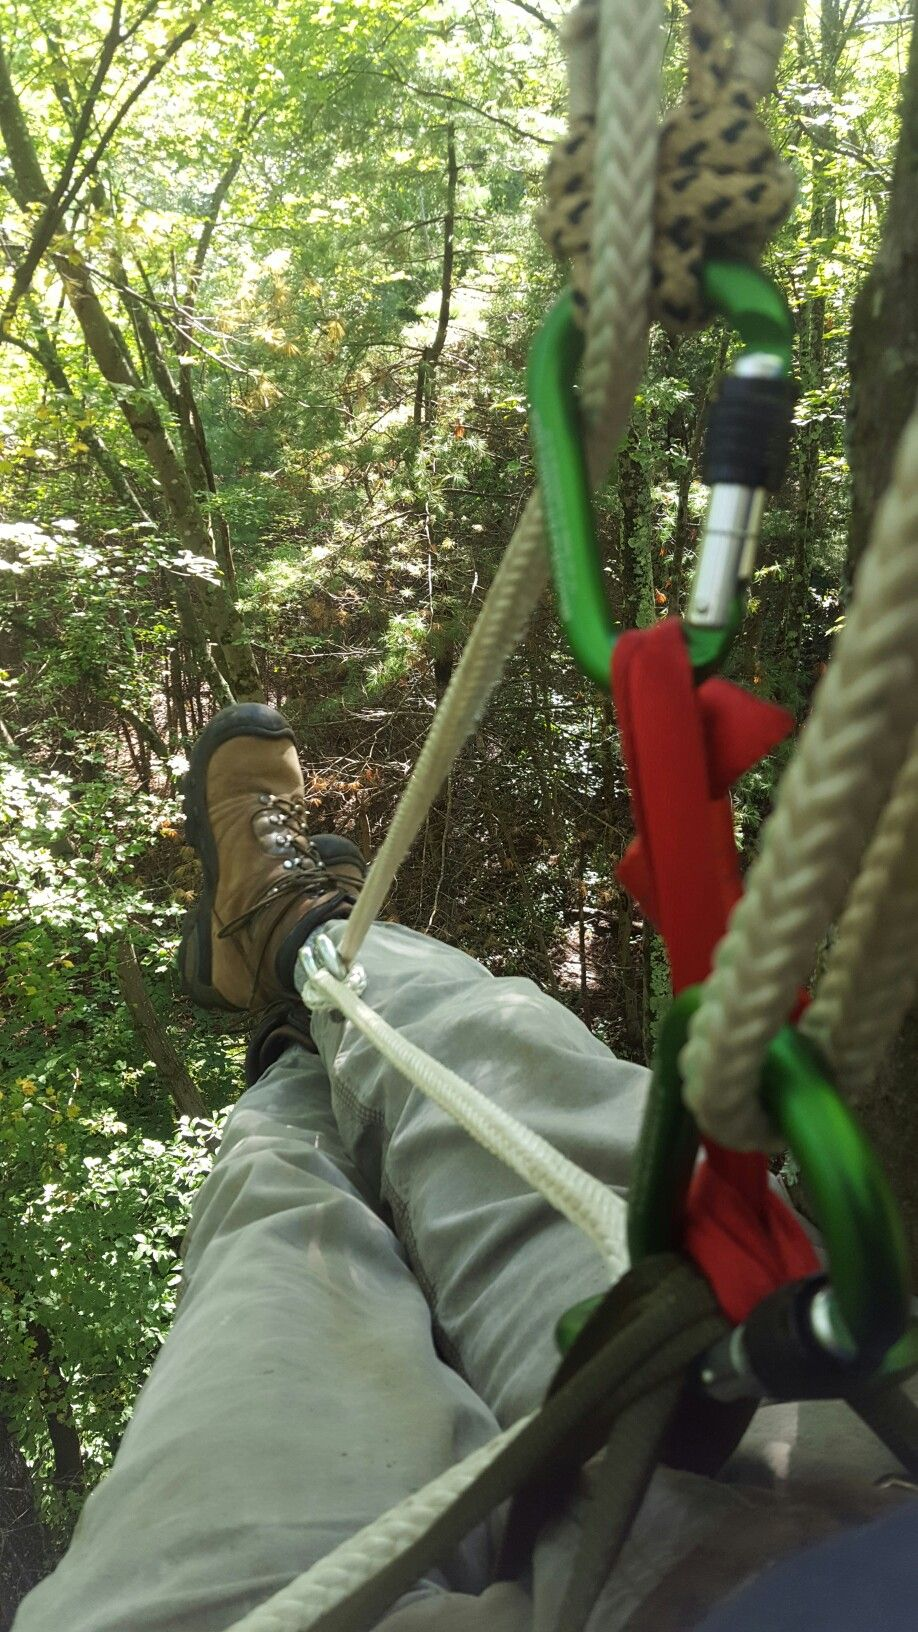 5acdabc74df Garda hitch foot ascender for drt or srt tree climbing